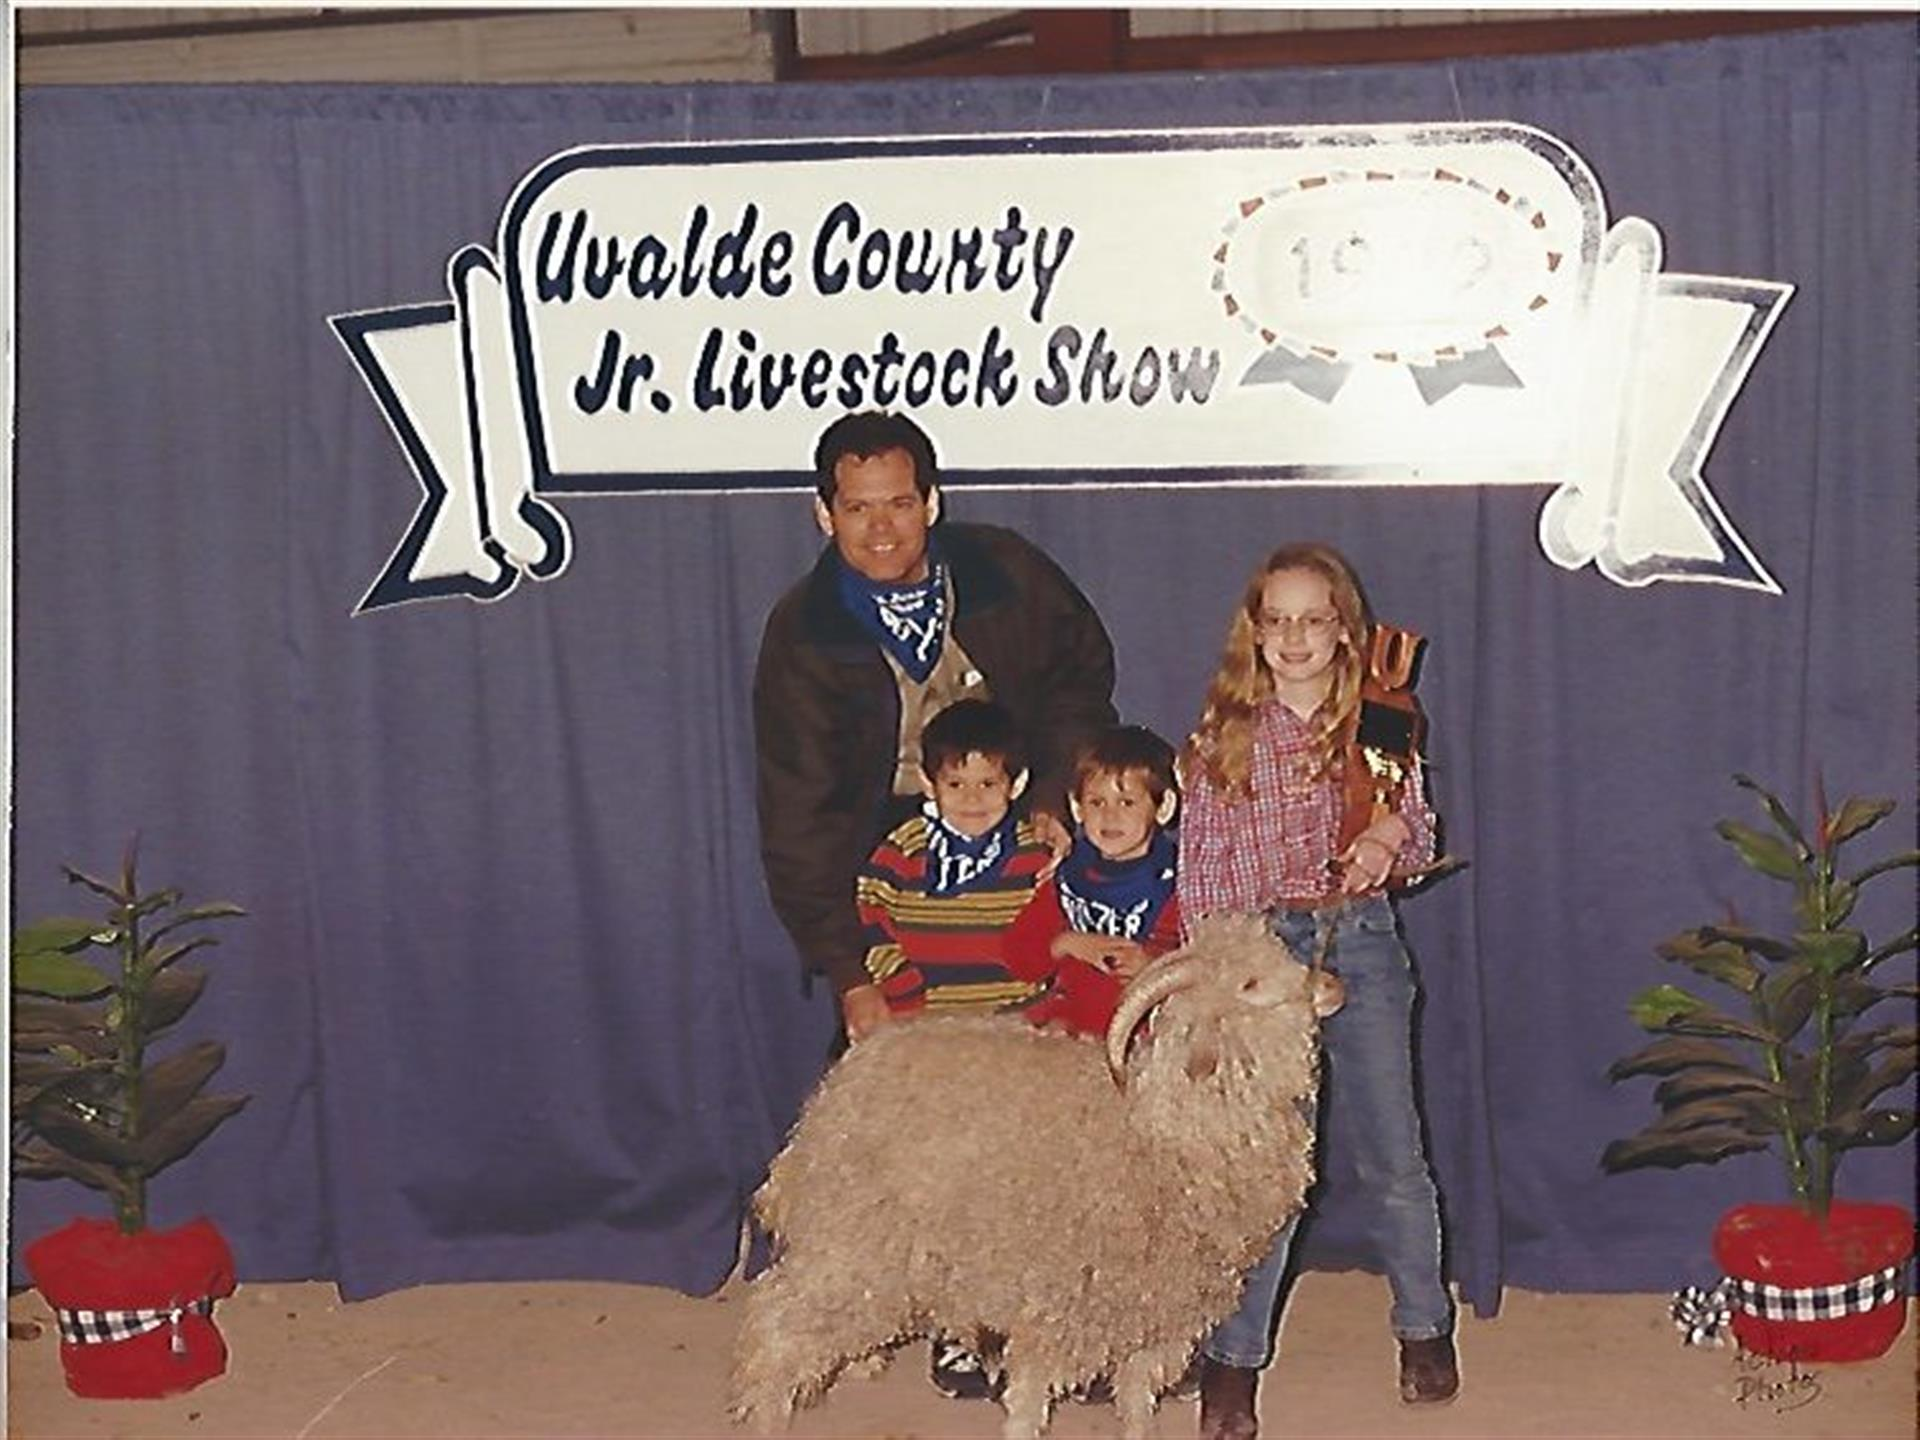 family taking a photo with a goat at the uvalde country jr. livestock show